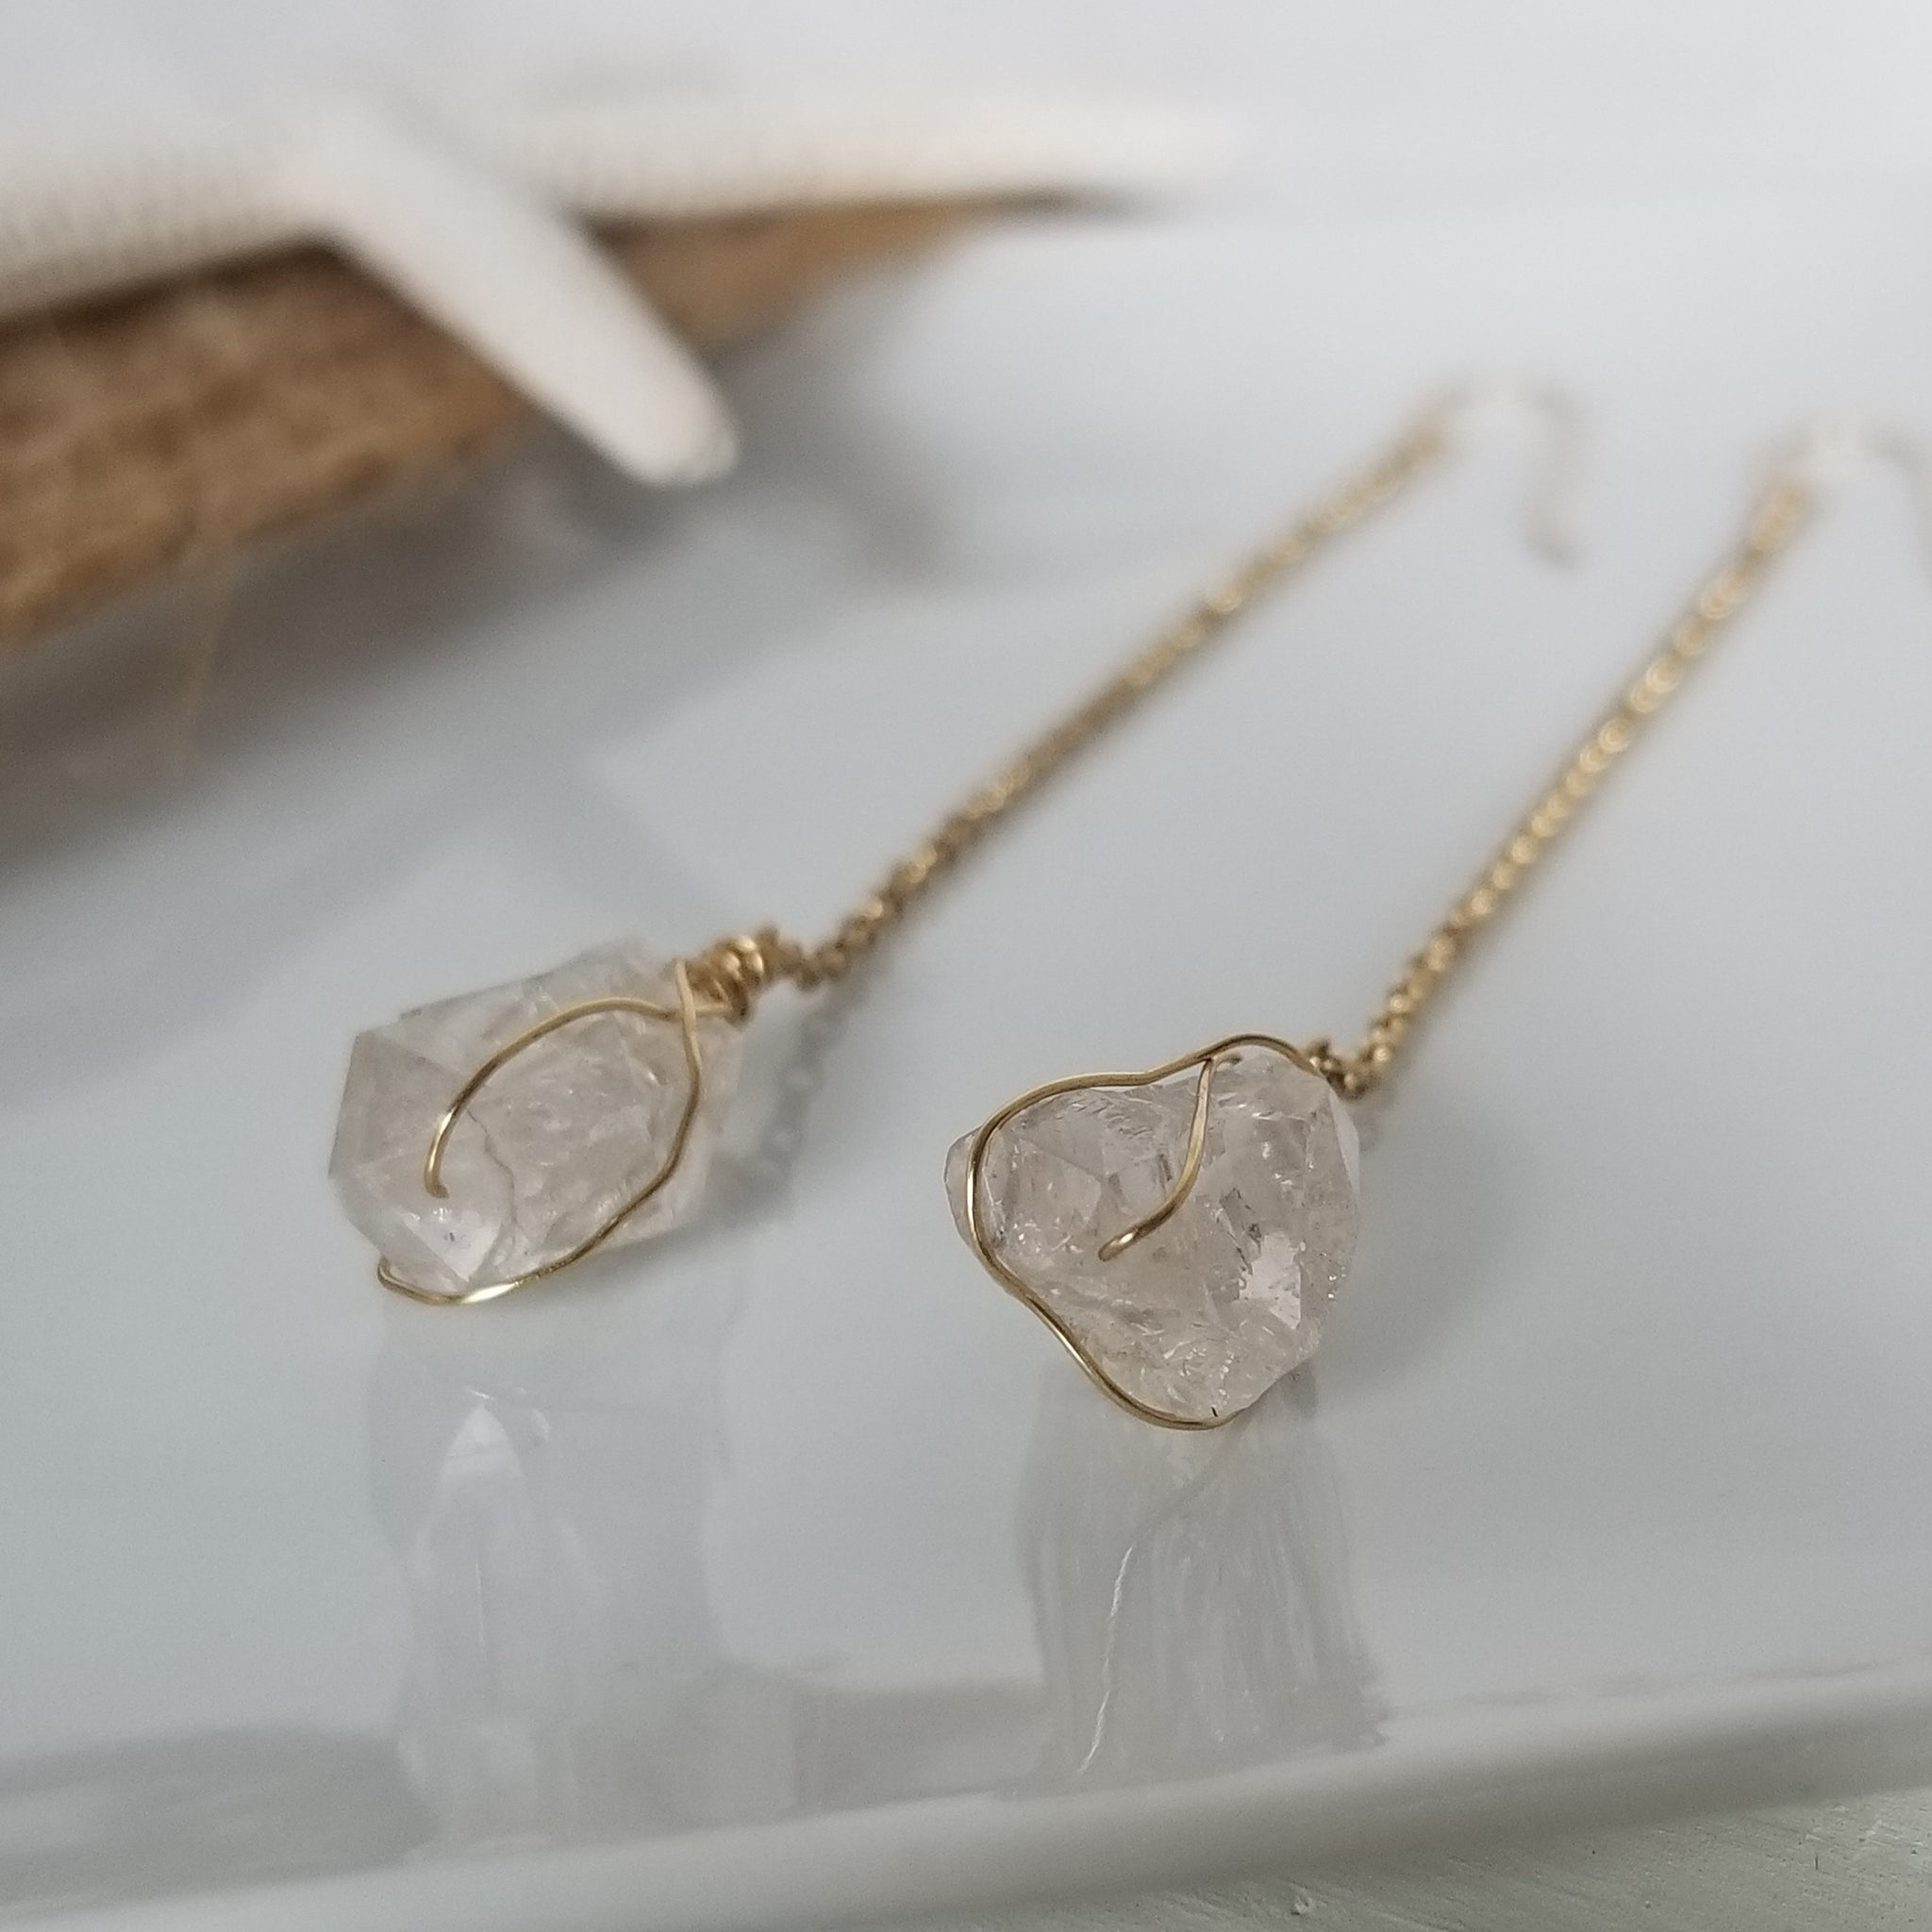 Herkimer Diamond and Chain Earrings - Sterling or Gold